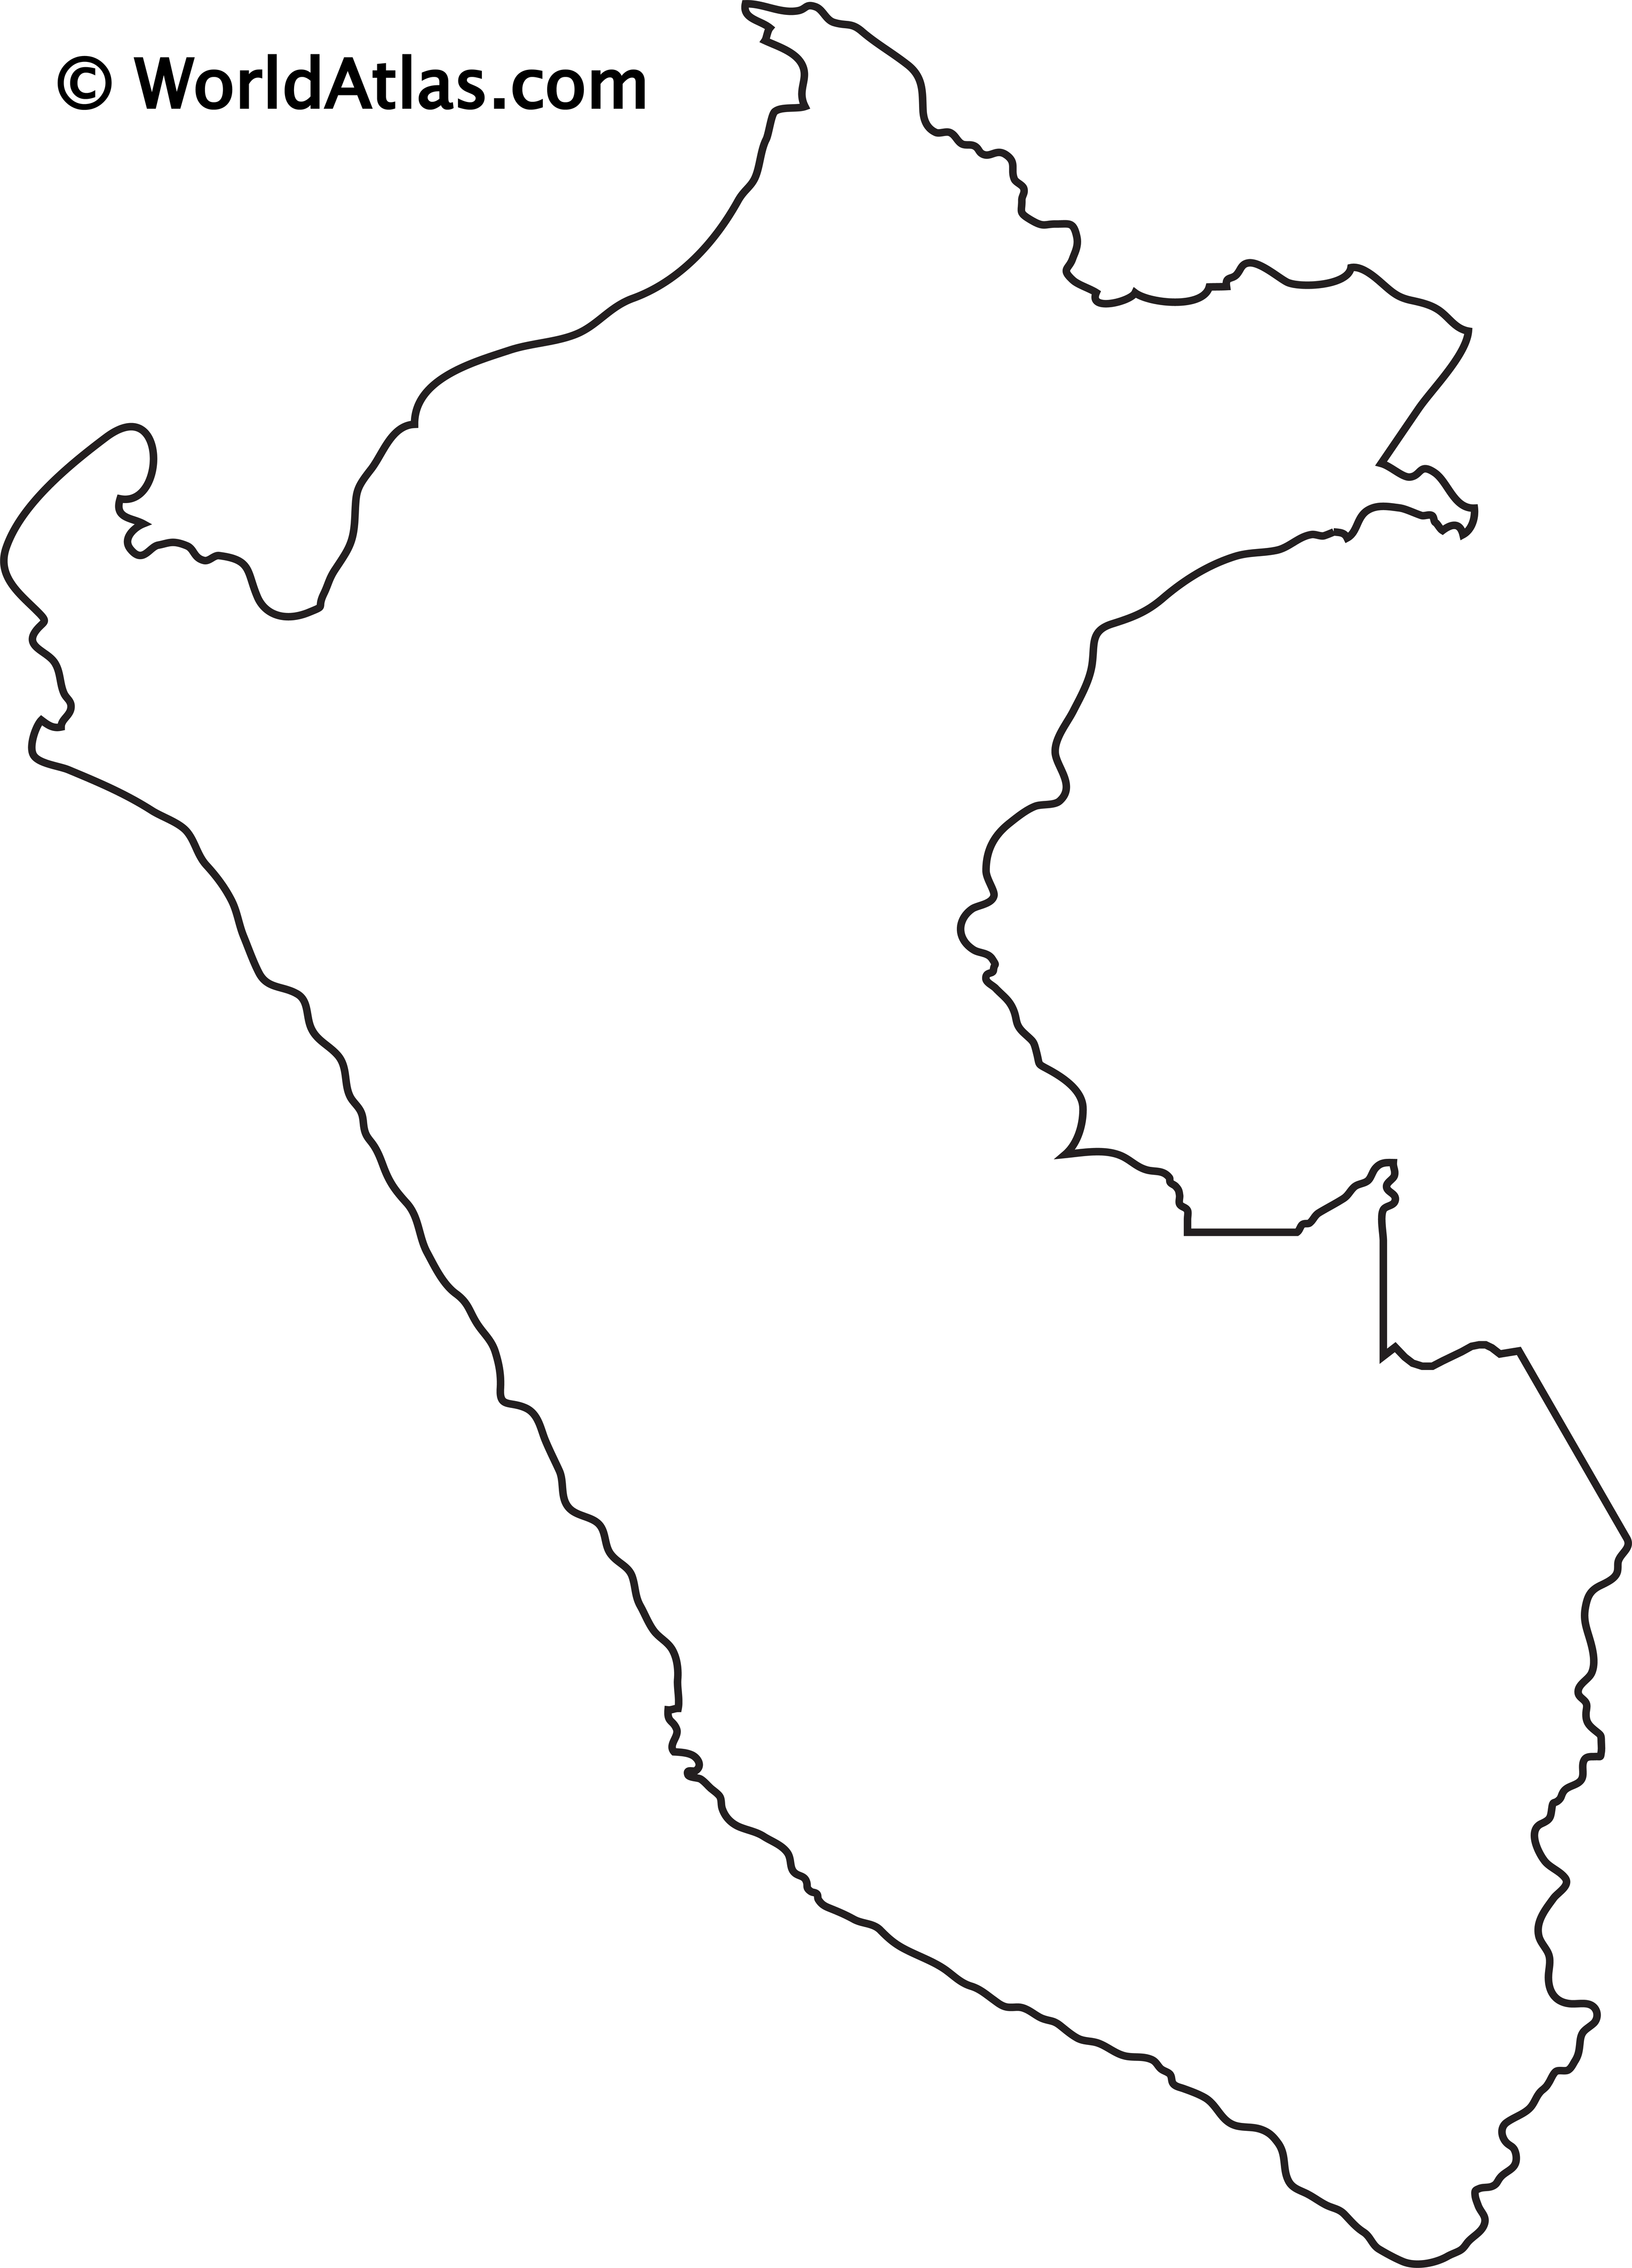 Blank Outline Map of Peru